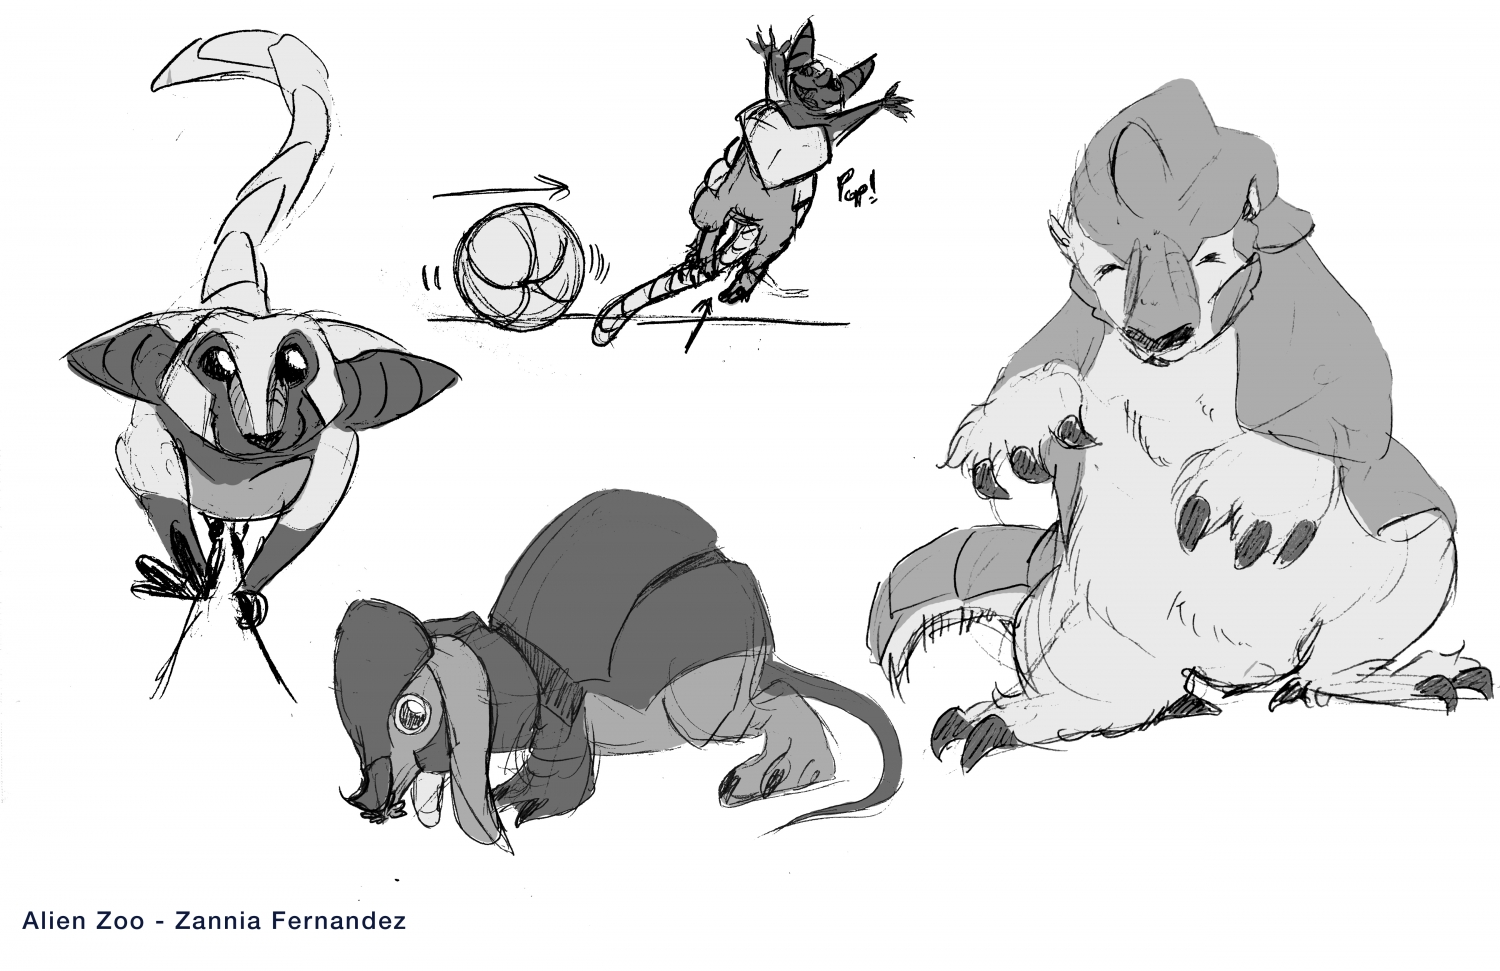 Three alien creatures designed for an interactive video game zoo